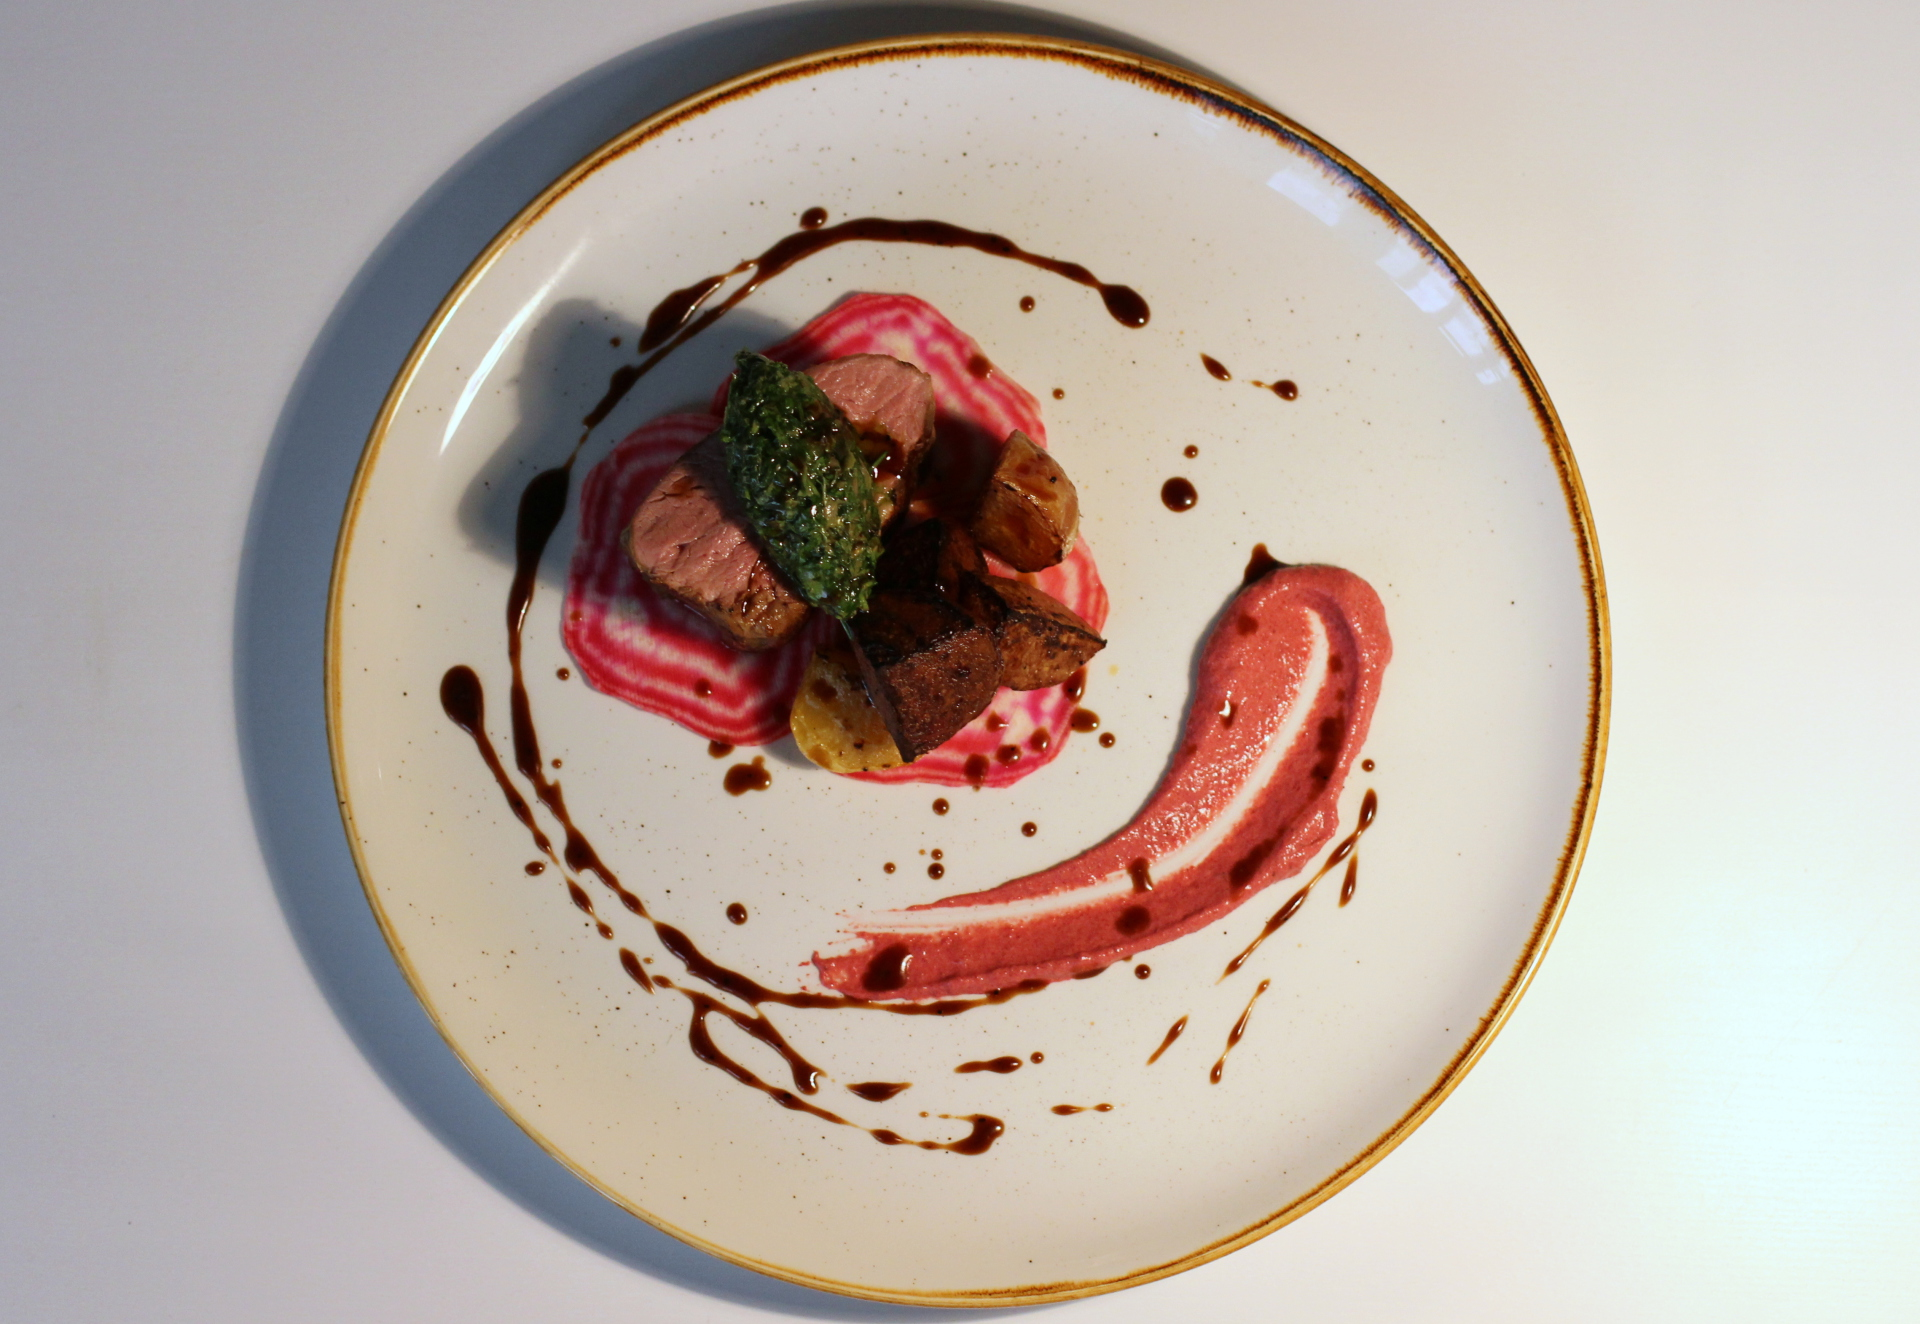 Lamb, Beetroot, Herbs